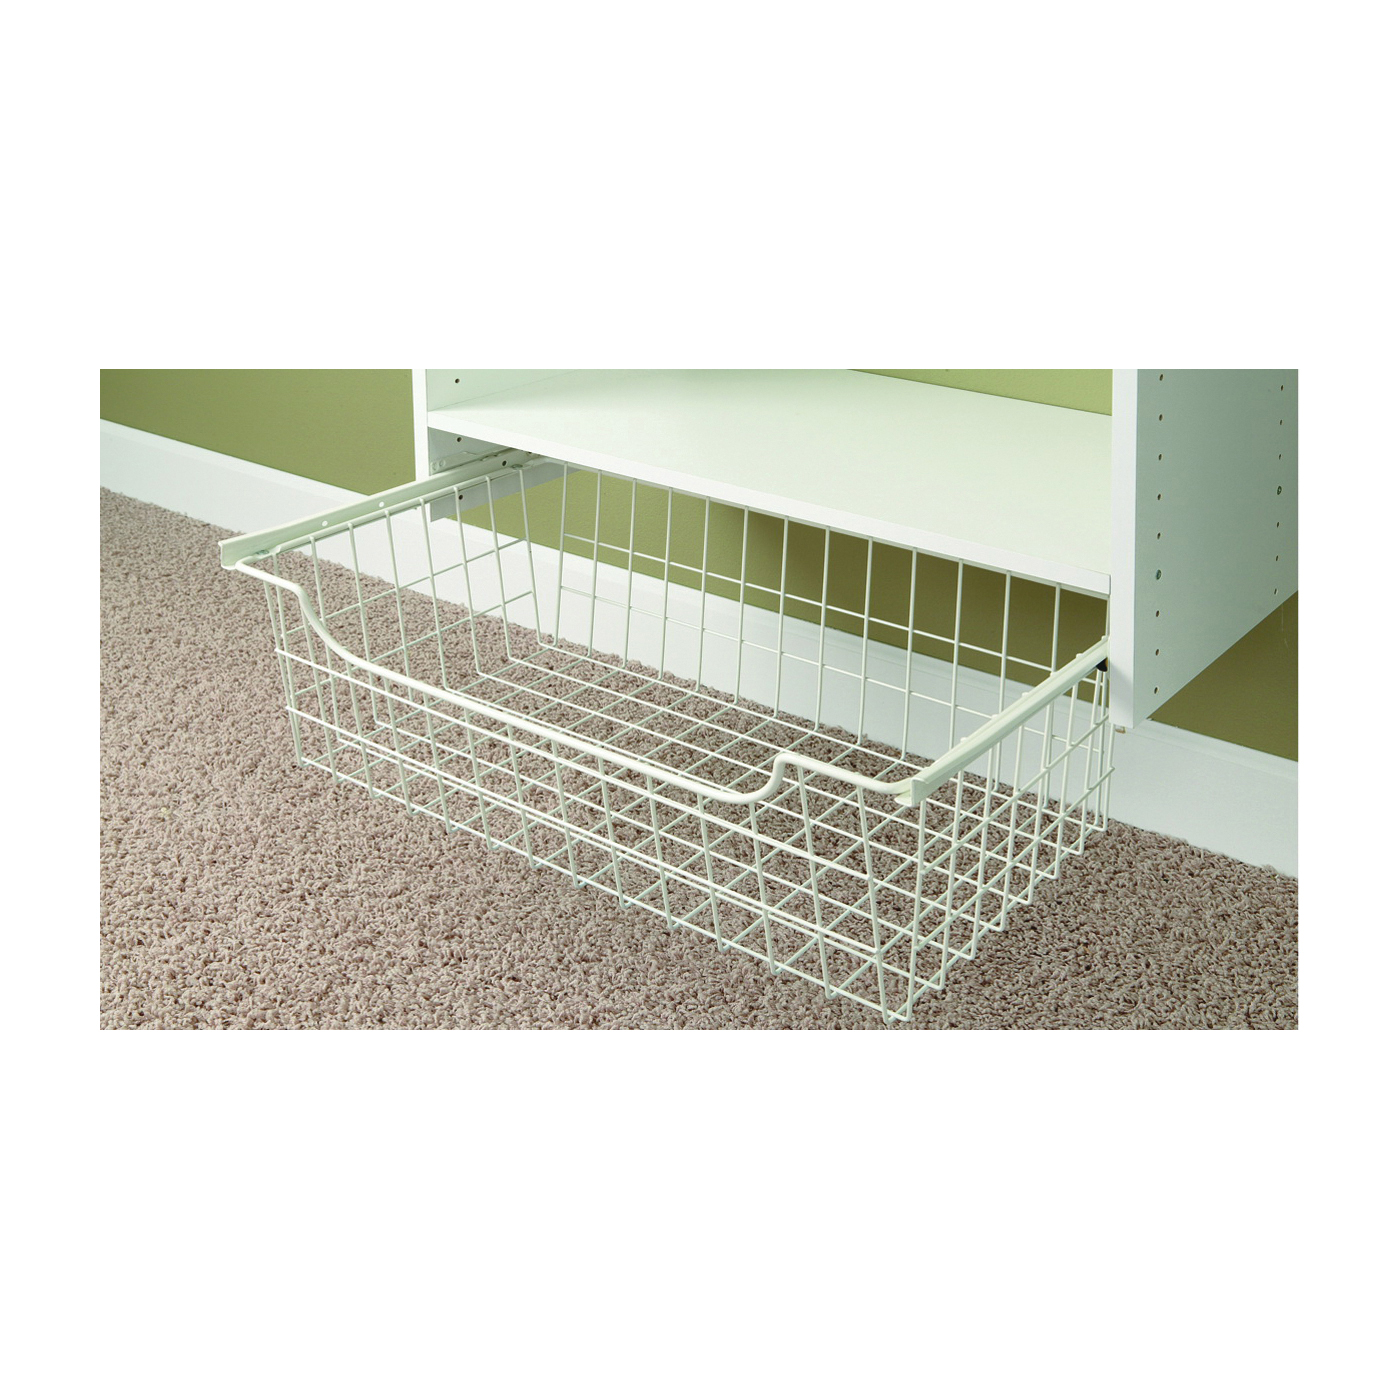 Picture of Easy Track 1308 Wire Basket, 14 in OAL, 24 in OAW, Steel, Powder-Coated